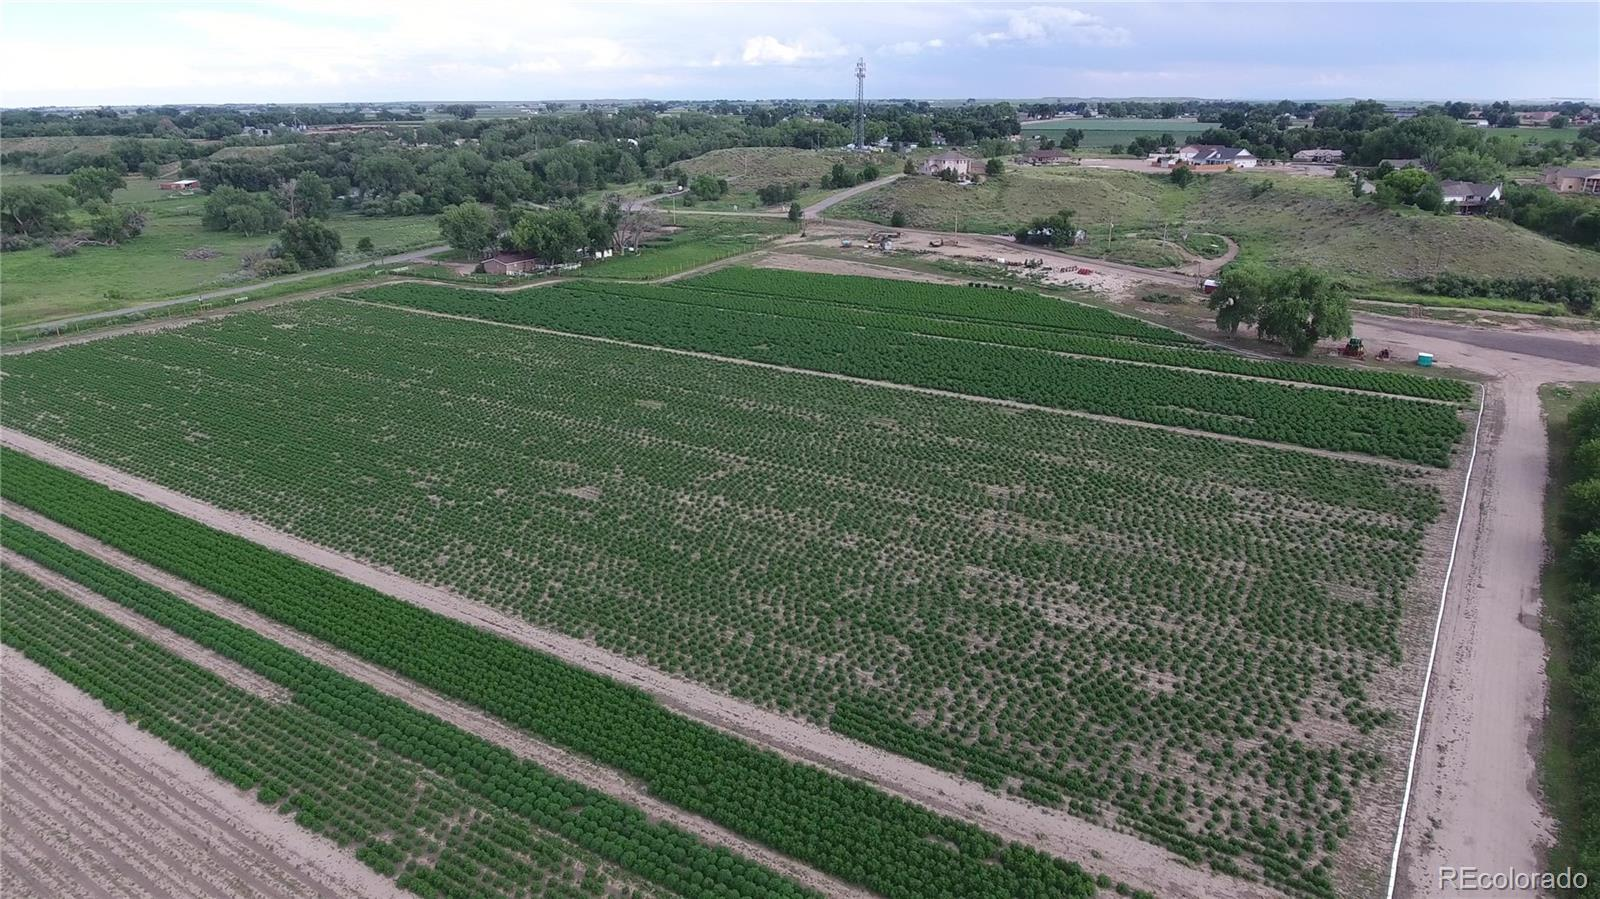 This prime 65+ Acre Hemp Farm is licensed, and located just minutes East of Pueblo Colorado.  The possibility of the additional 10 acres are endless. The property features 8 hoop houses 20x40 each built-in 2019, 1 large temperature-controlled greenhouse 42x108 built-in 2018, a warehouse 42x240 built-in 2017, 60x24 office trailers, and several storage containers. With Arkansas River water rights and a Well, water is not a limiting factor on this facility! This property has high-speed fiber optic internet. Other items included in the sale of this property are the security fence, security system, all irrigation, and pumping equipment. Additional items such as a tractor, utility truck, and miscellaneous farm equipment are available for sale separately.